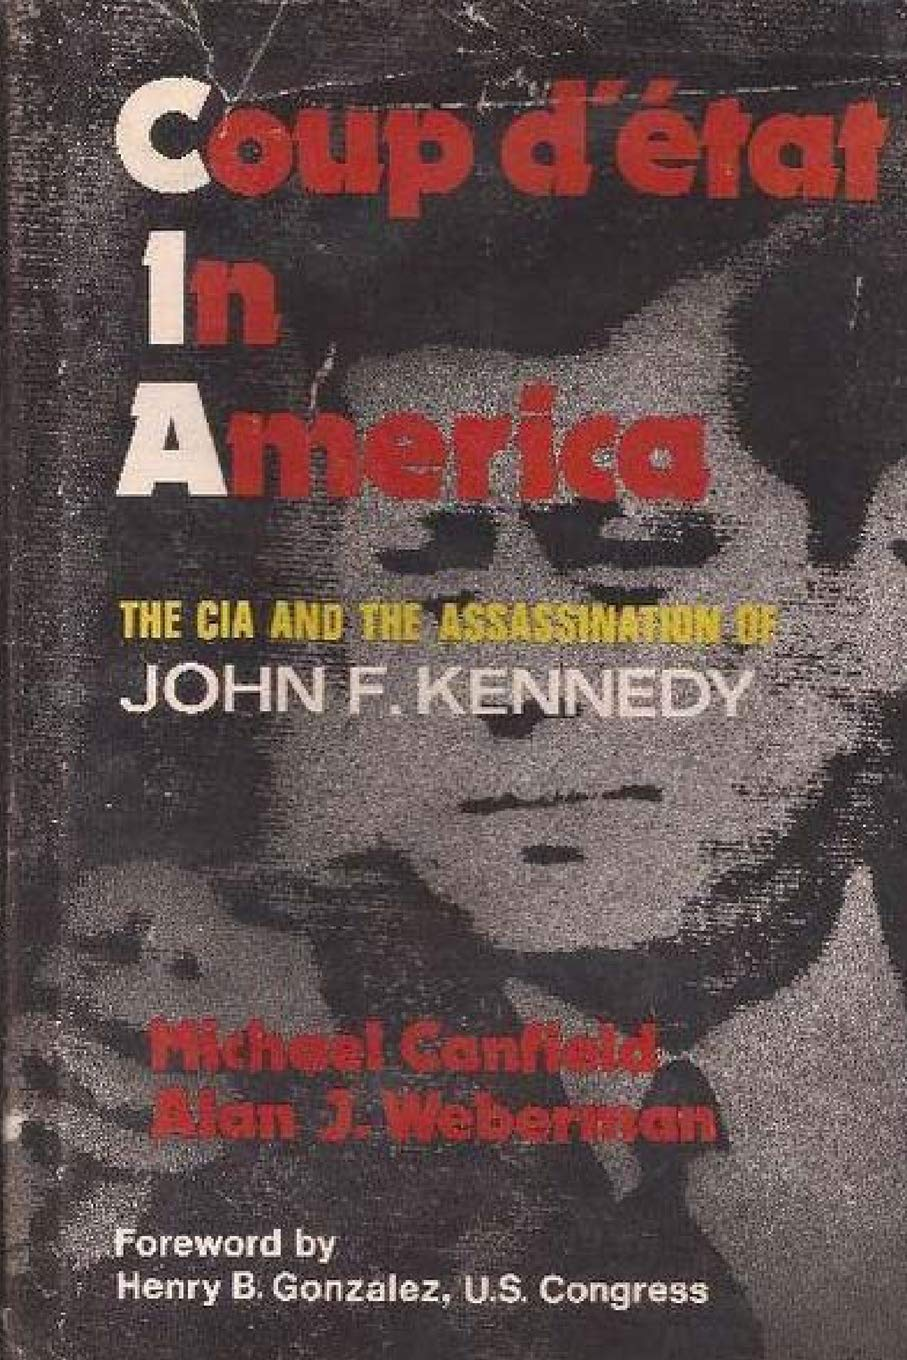 Download Coup D'Etat In America Volume One: The CIA and the Assassination of John Kennedy (Volume 1) ebook